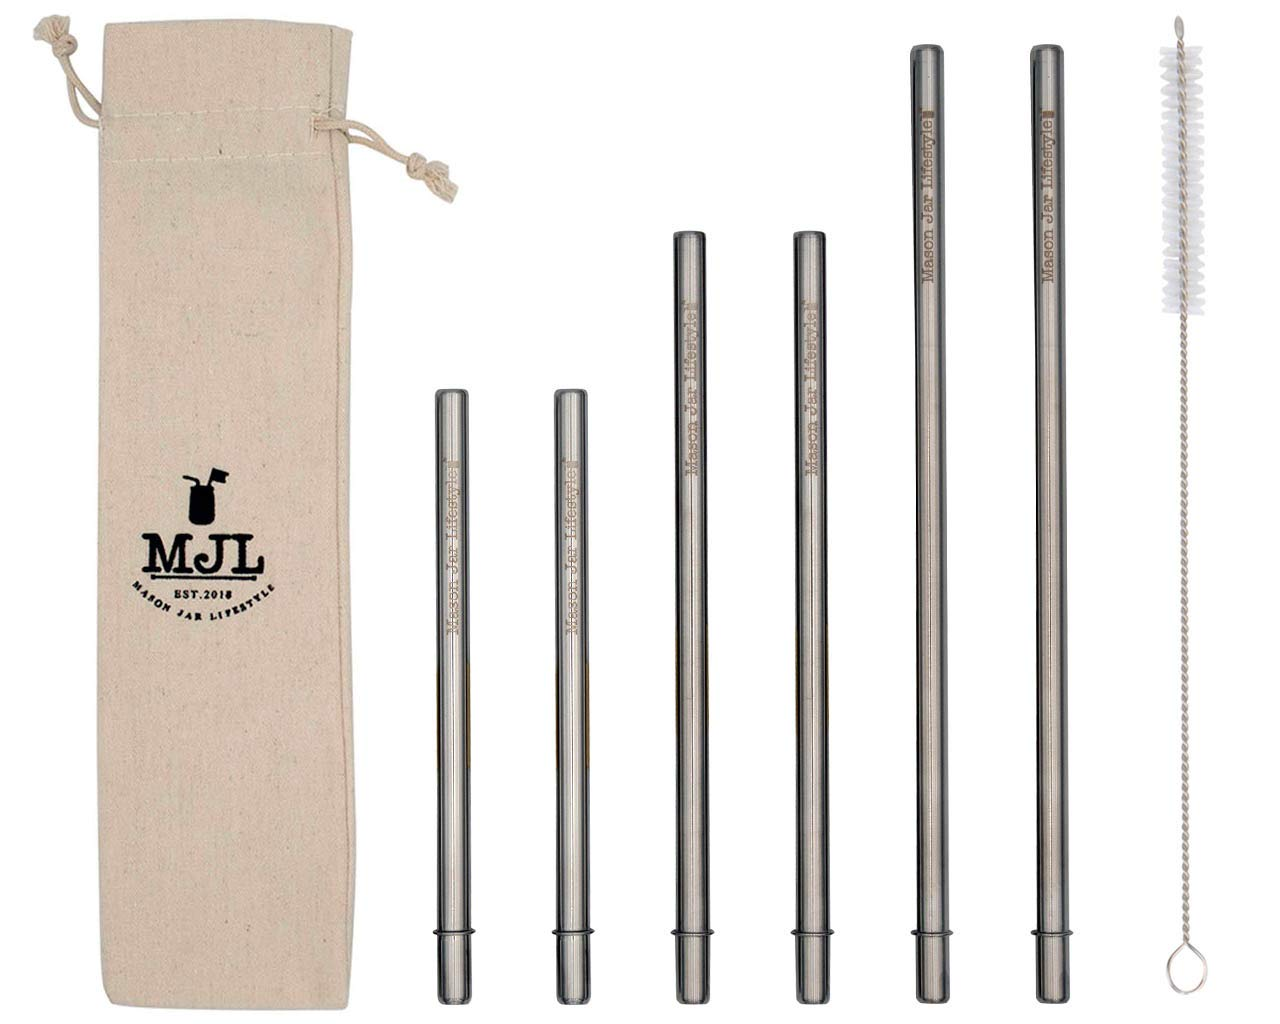 Combo Pack Safer Rounded End Stainless Steel Metal Straws for Mason Jars (6 Pack + Cleaning Brush + Bag) by Mason Jar Lifestyle